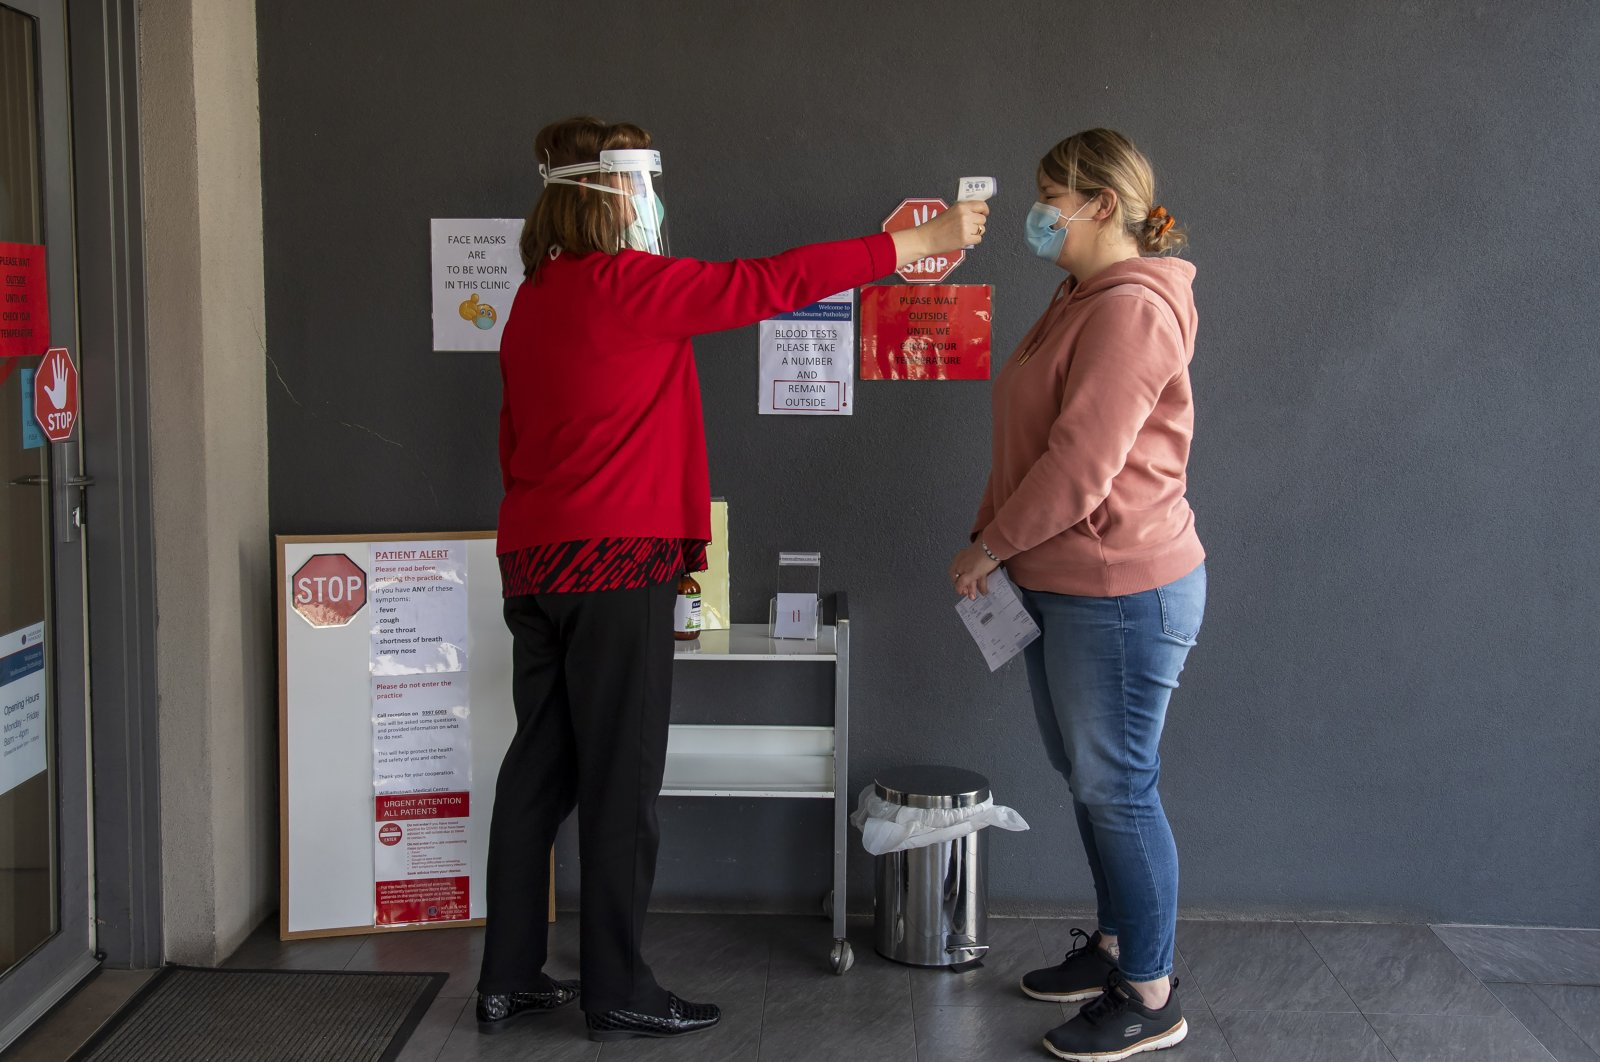 A patient has her temperature checked at a medical clinic during lockdown due to the continuing spread of the coronavirus in Melbourne, Aug. 6, 2020. (AP Photo)